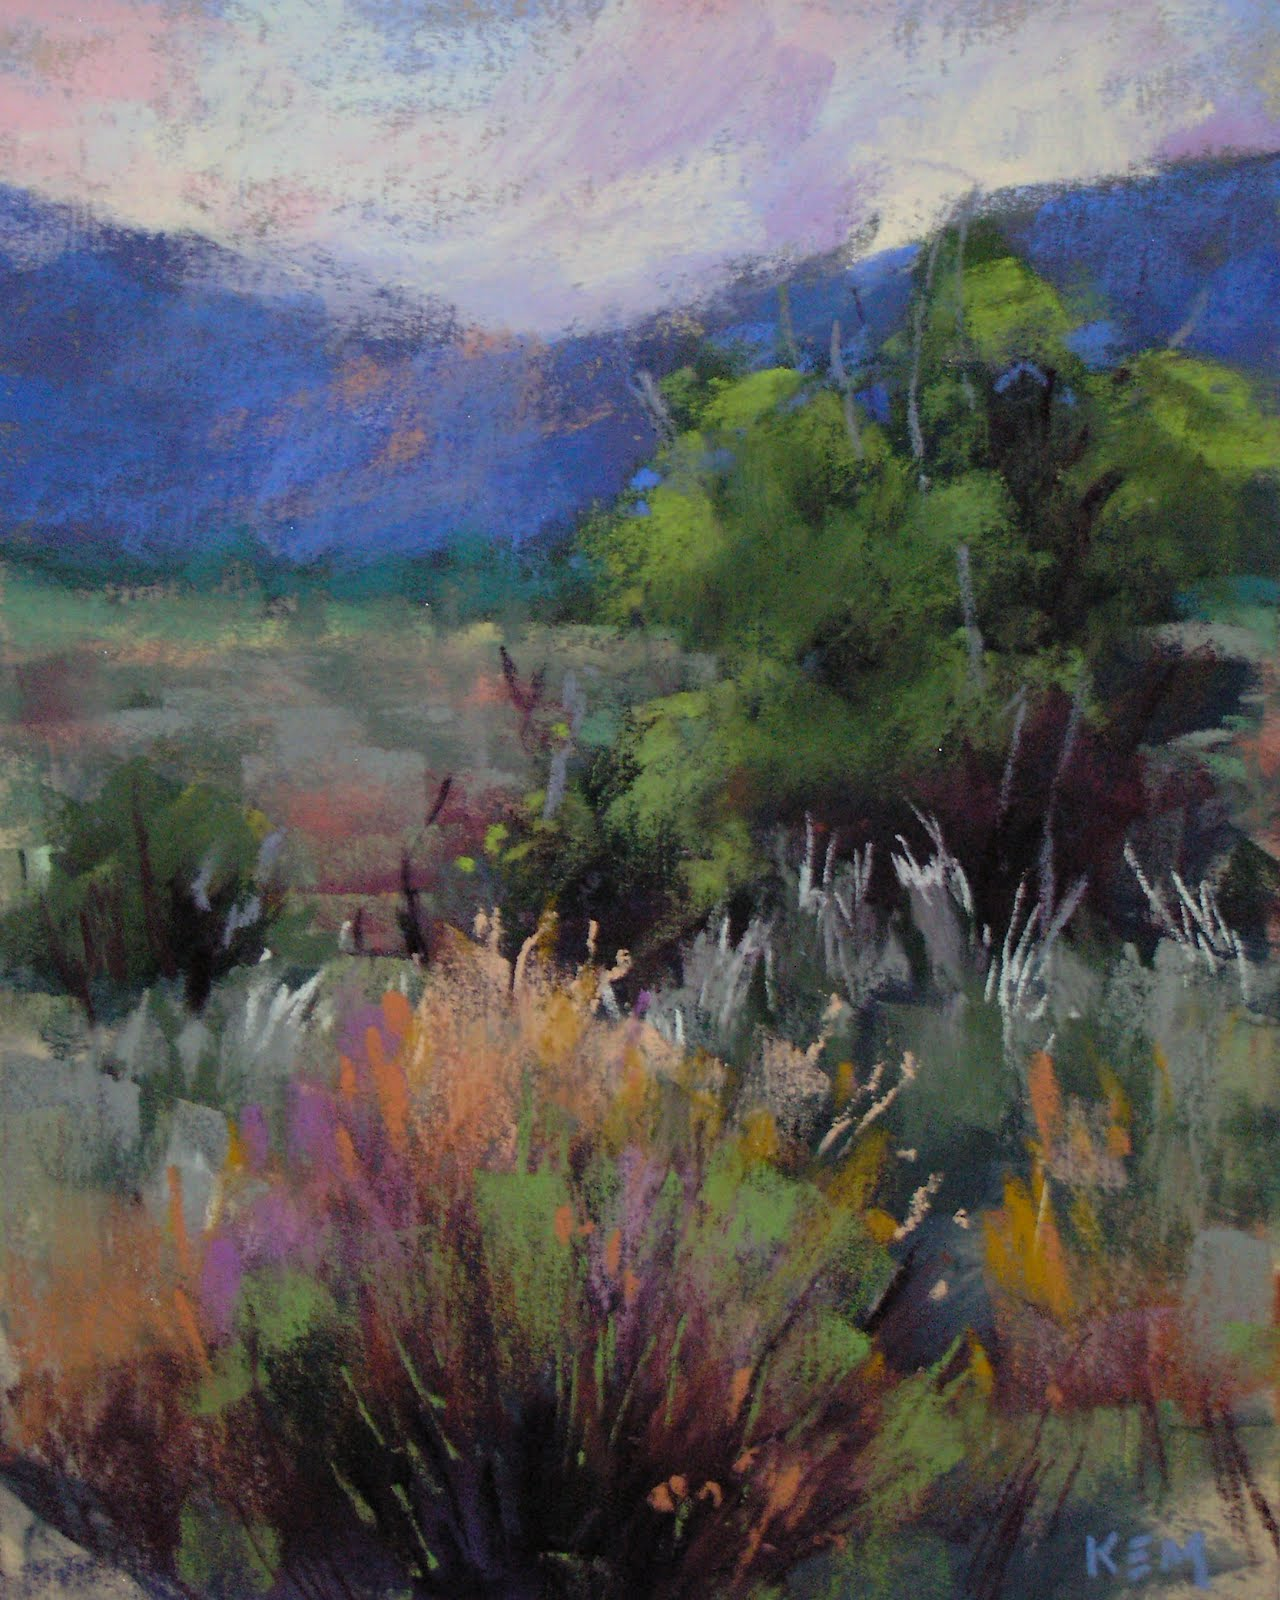 Painting: Painting My World: Here's A Quick Way To Plan Your Next